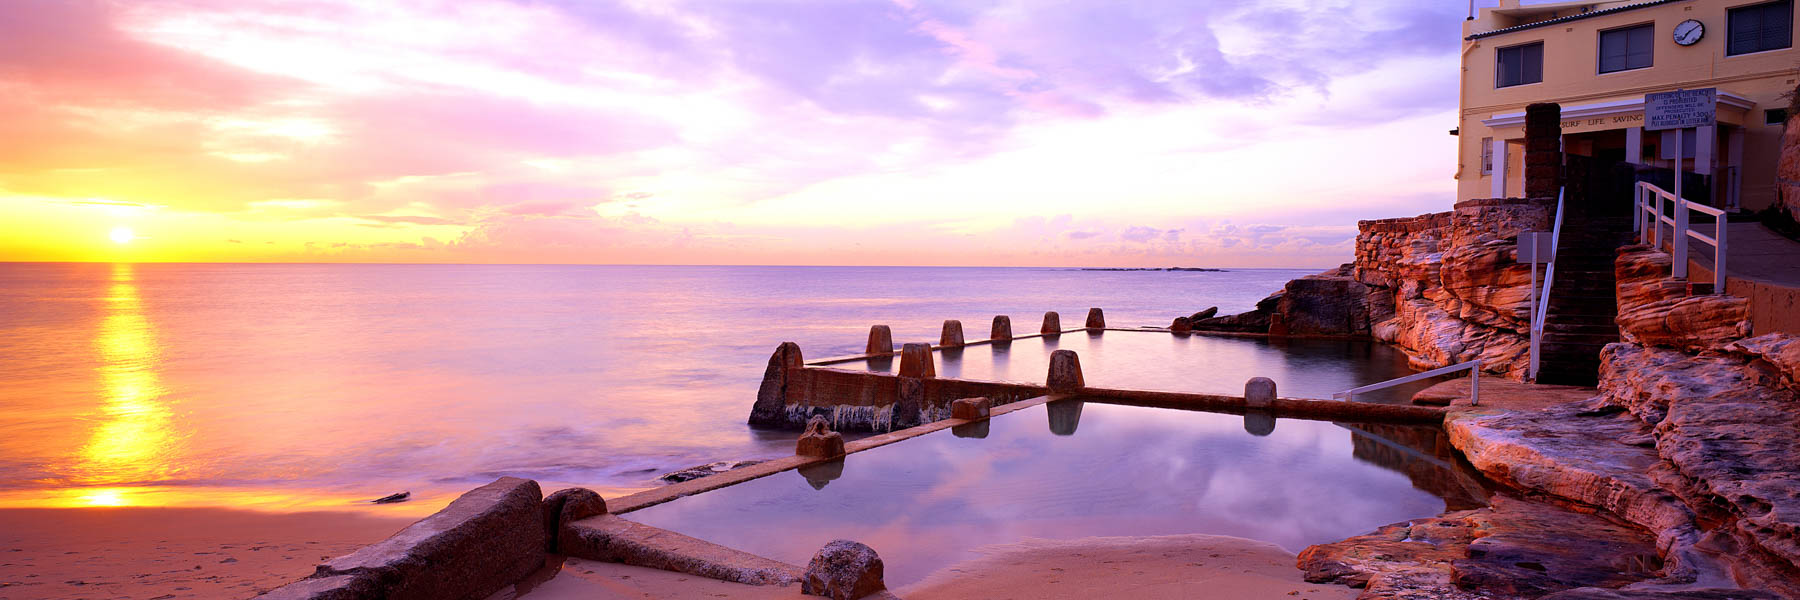 Sunrise casting a golden and pastel glow over Coogee Sea Pool, Sydney, NSW, Australia.